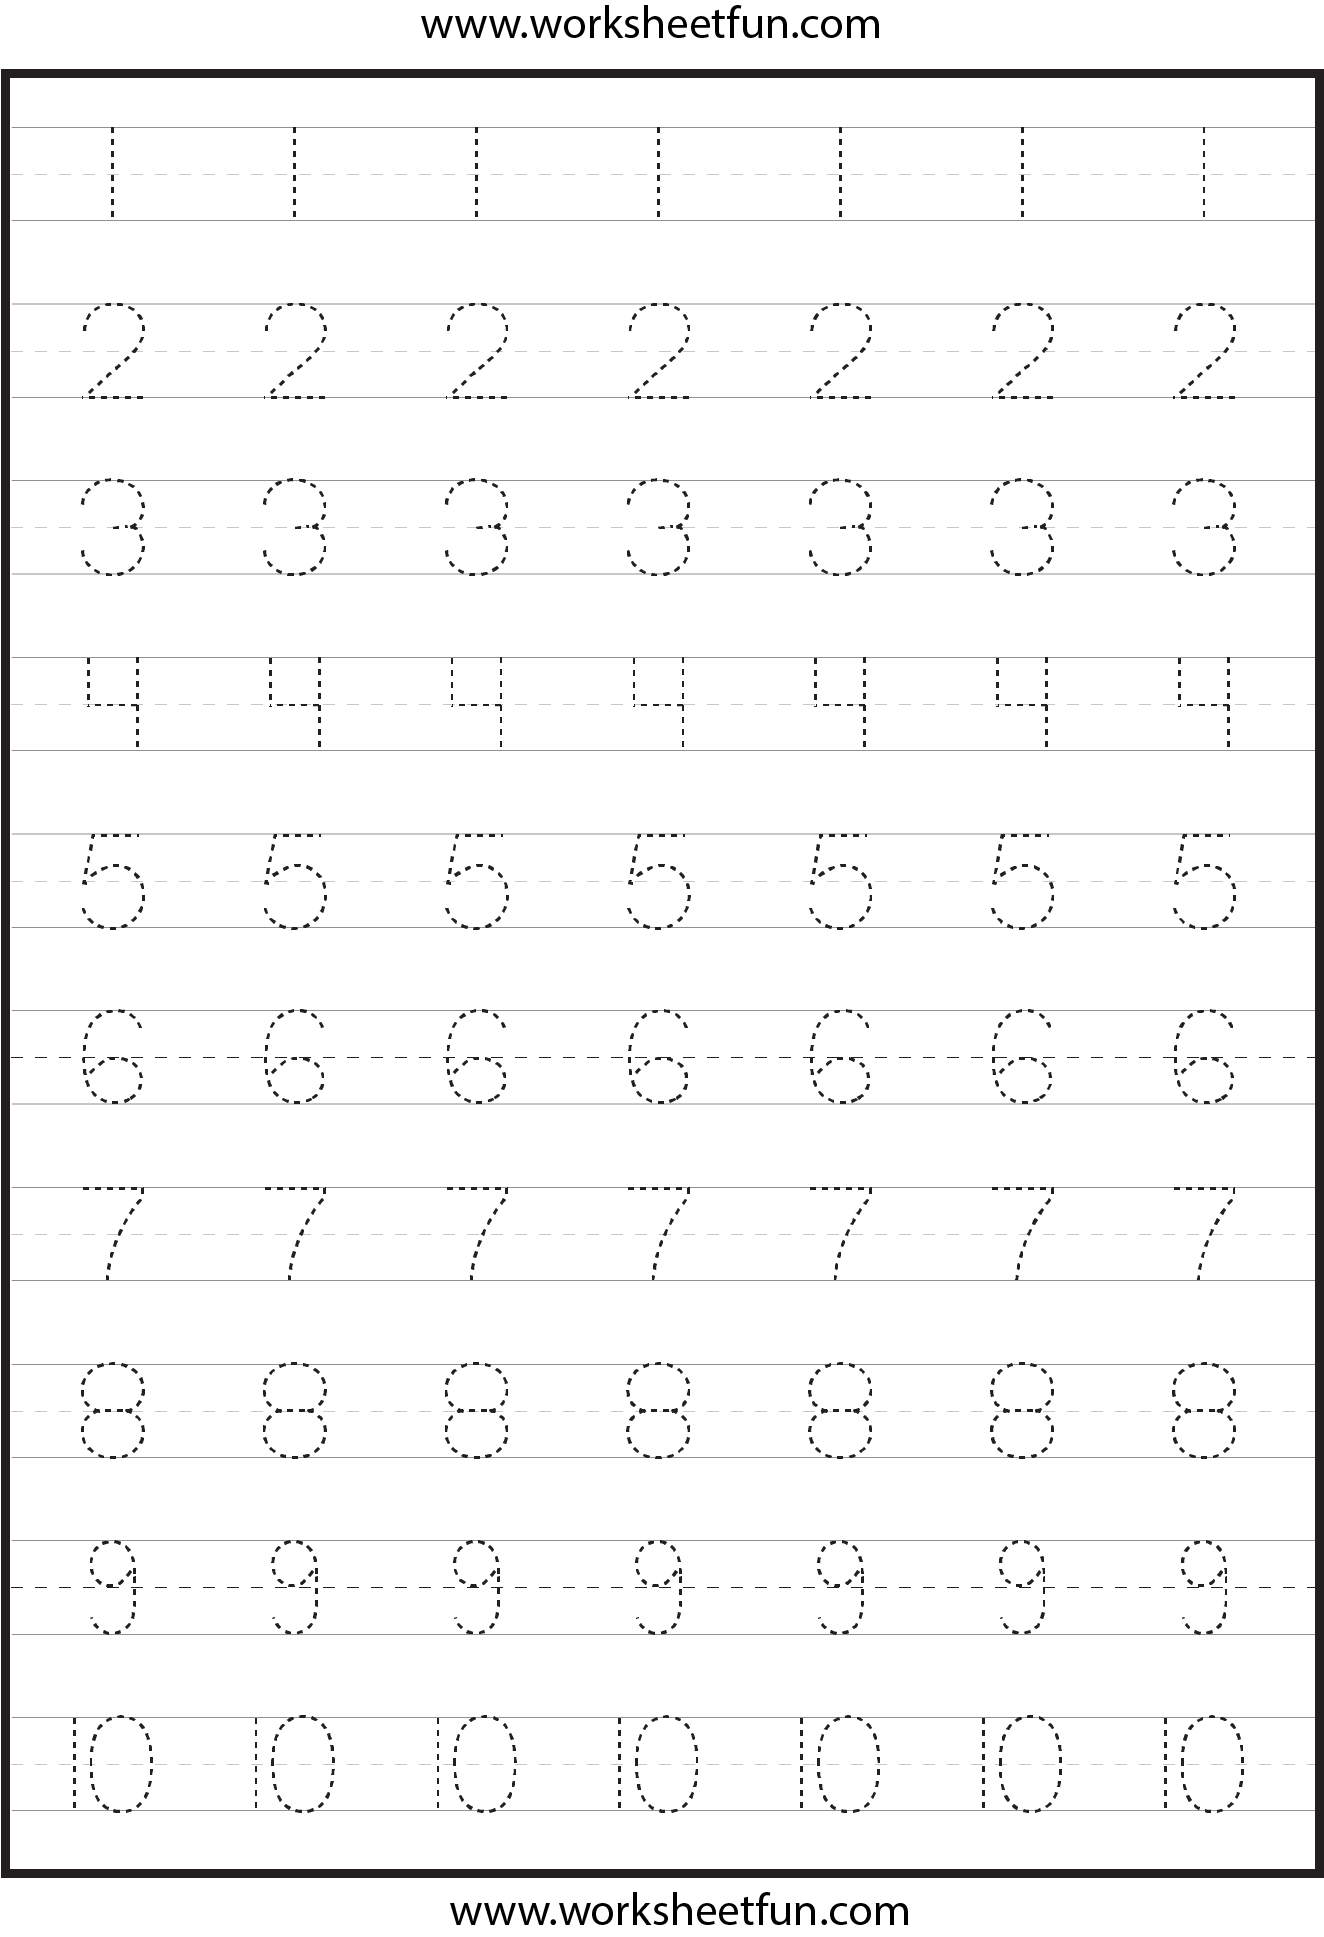 number tracing worksheets for kindergarten 1 10 ten worksheets worksheets for gia. Black Bedroom Furniture Sets. Home Design Ideas